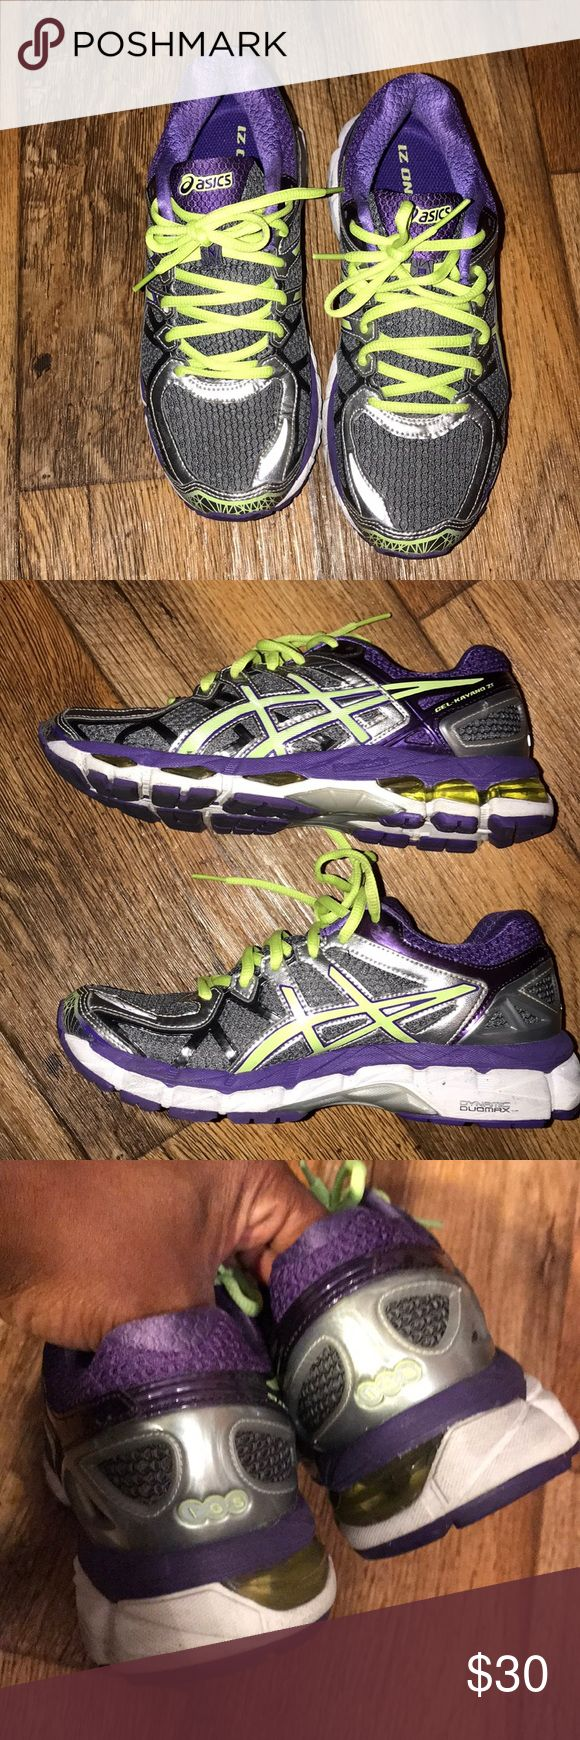 Women's ASICS GEL💜💜💜💜💜 Very nice size 7 pair of ASICS gel tennis for women in good condition. Asics Shoes Athletic Shoes